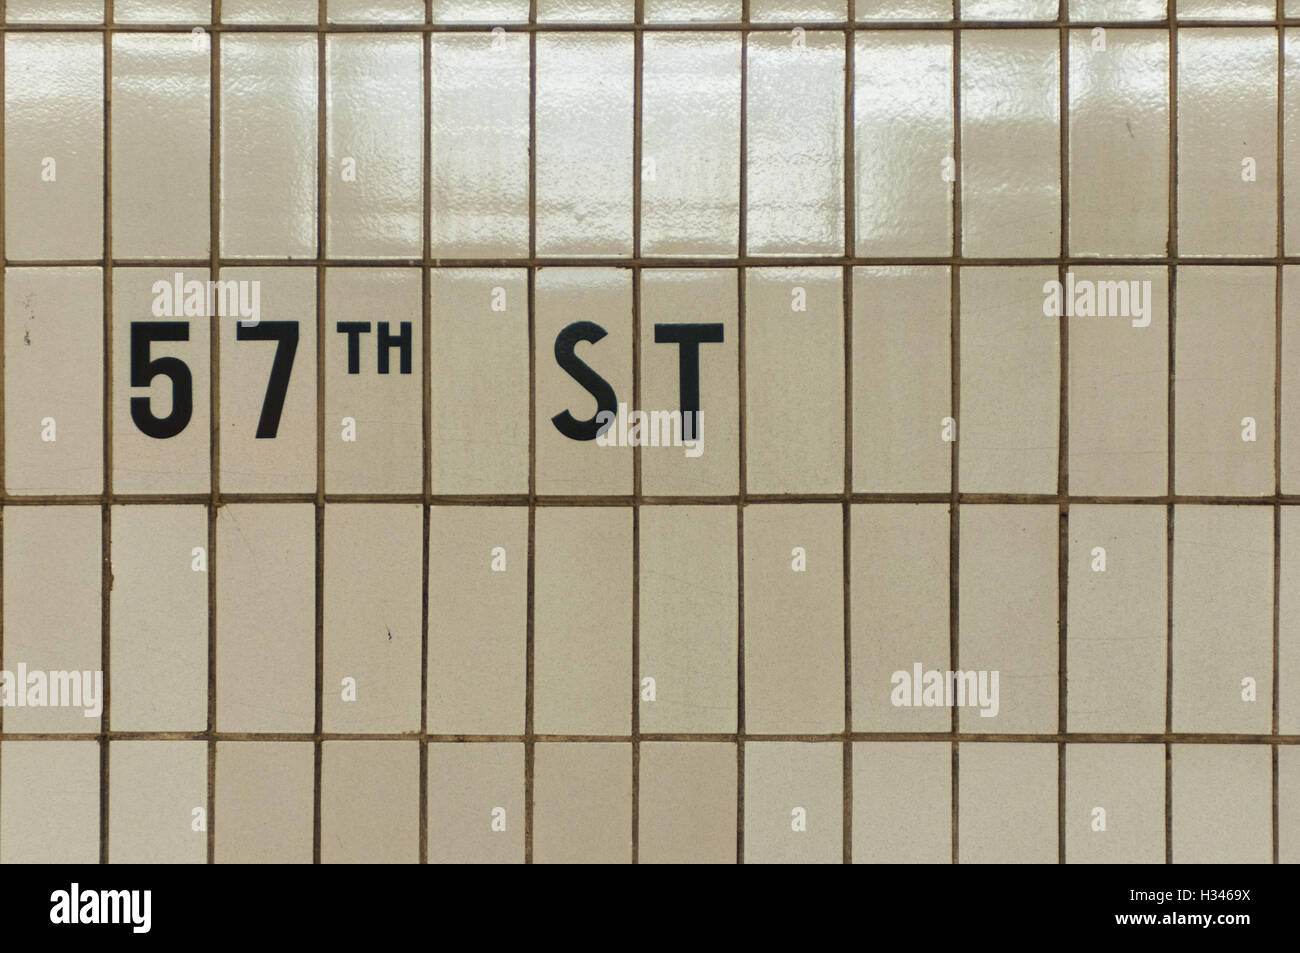 New York City 57th Street Subway Station tile signage - Stock Image